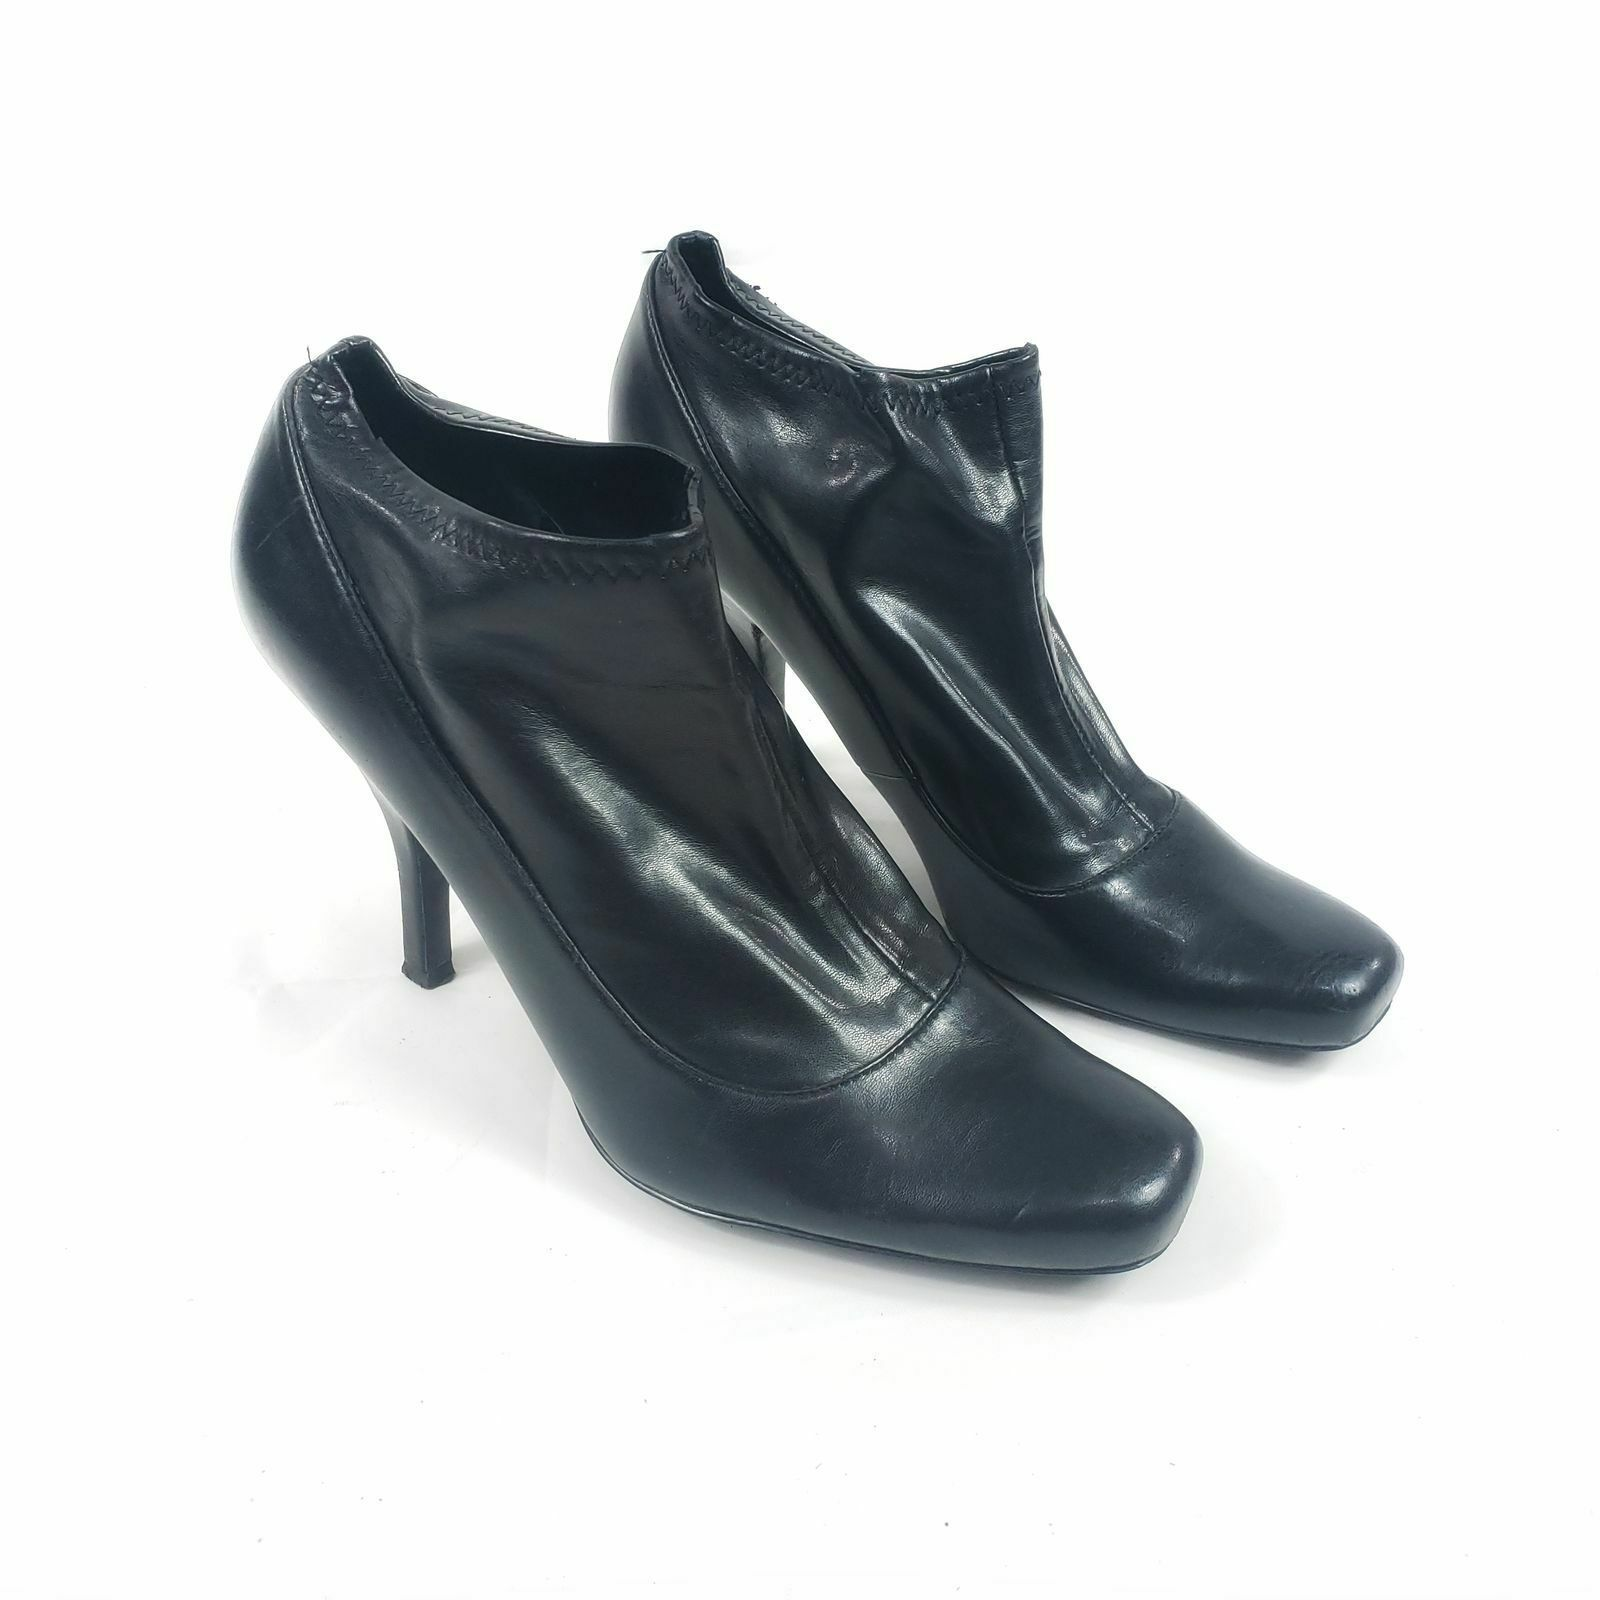 Nine West Sophisto Sexy Black Faux Leather Pump Ankle Booties Size 8.5 M - $20.00